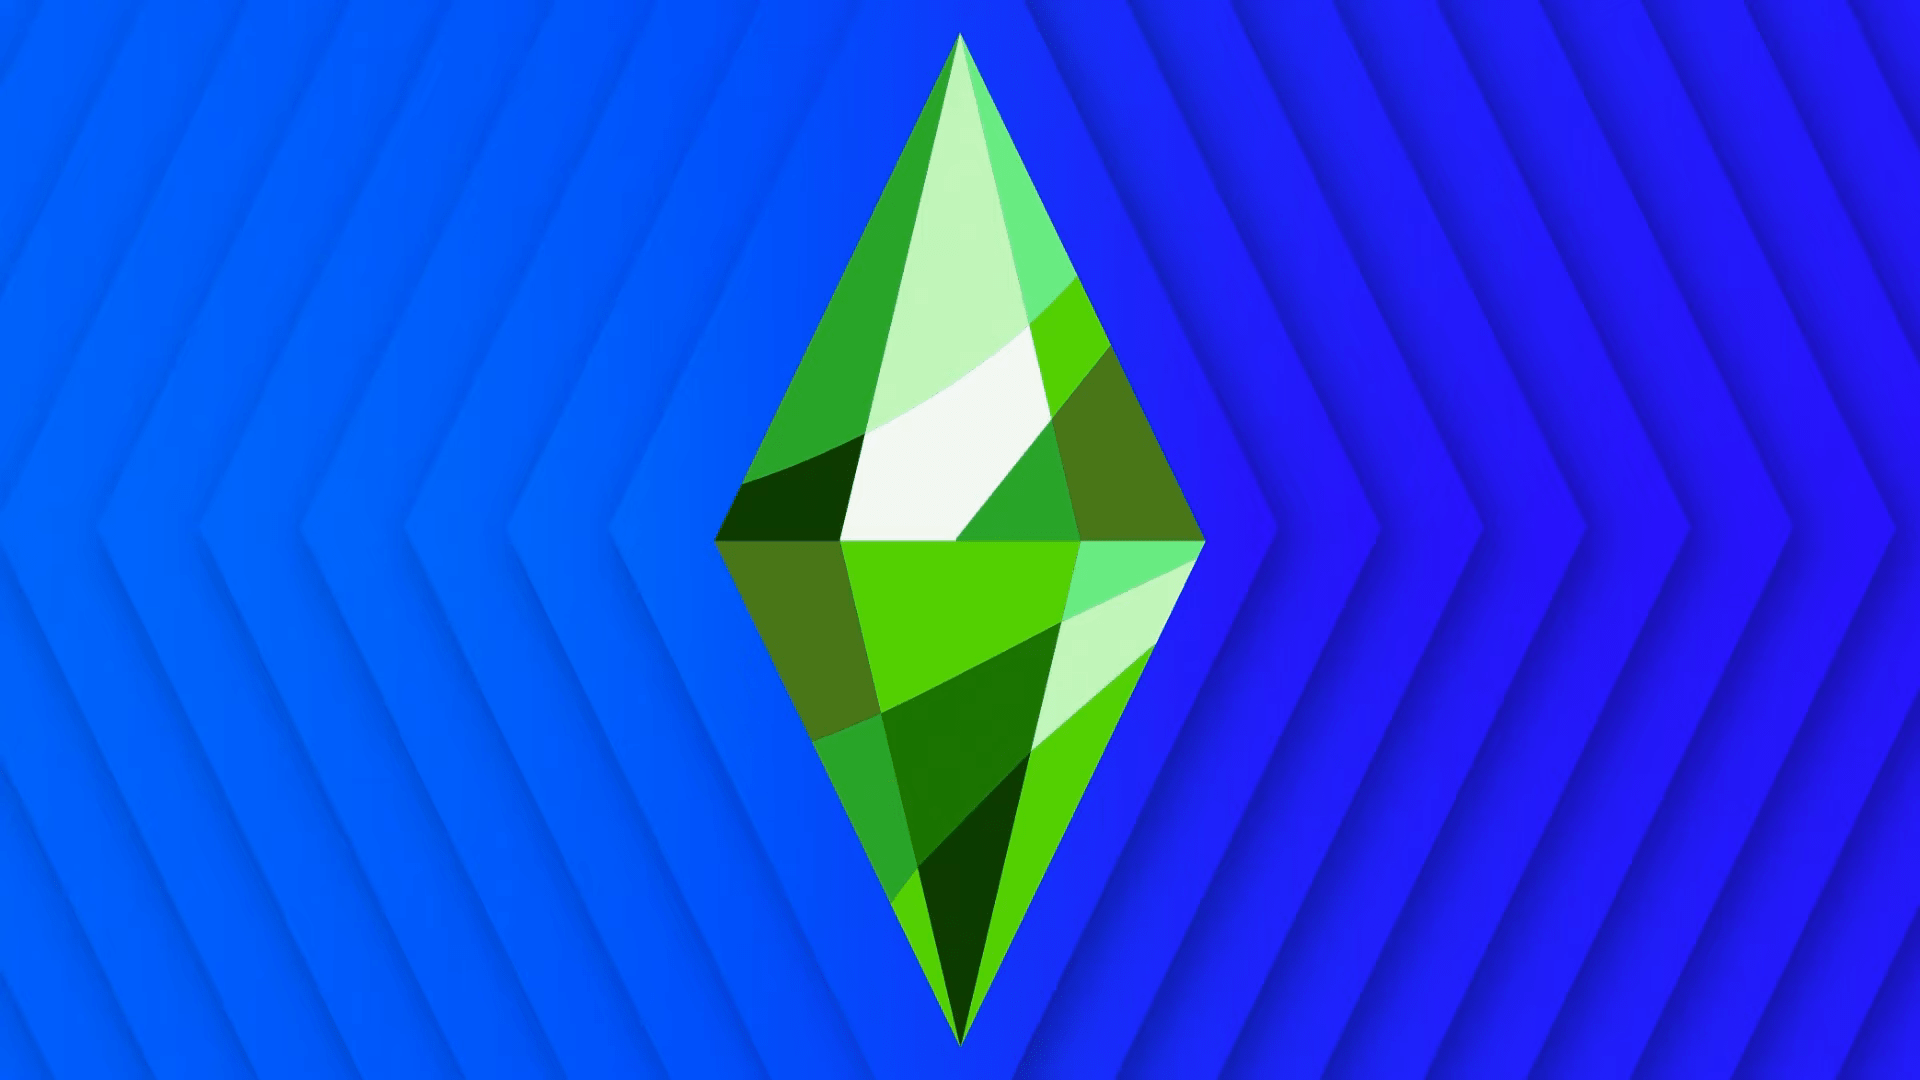 A New Expansion Pack For The Sims 4 Will Be Revealed Soon According To Developer